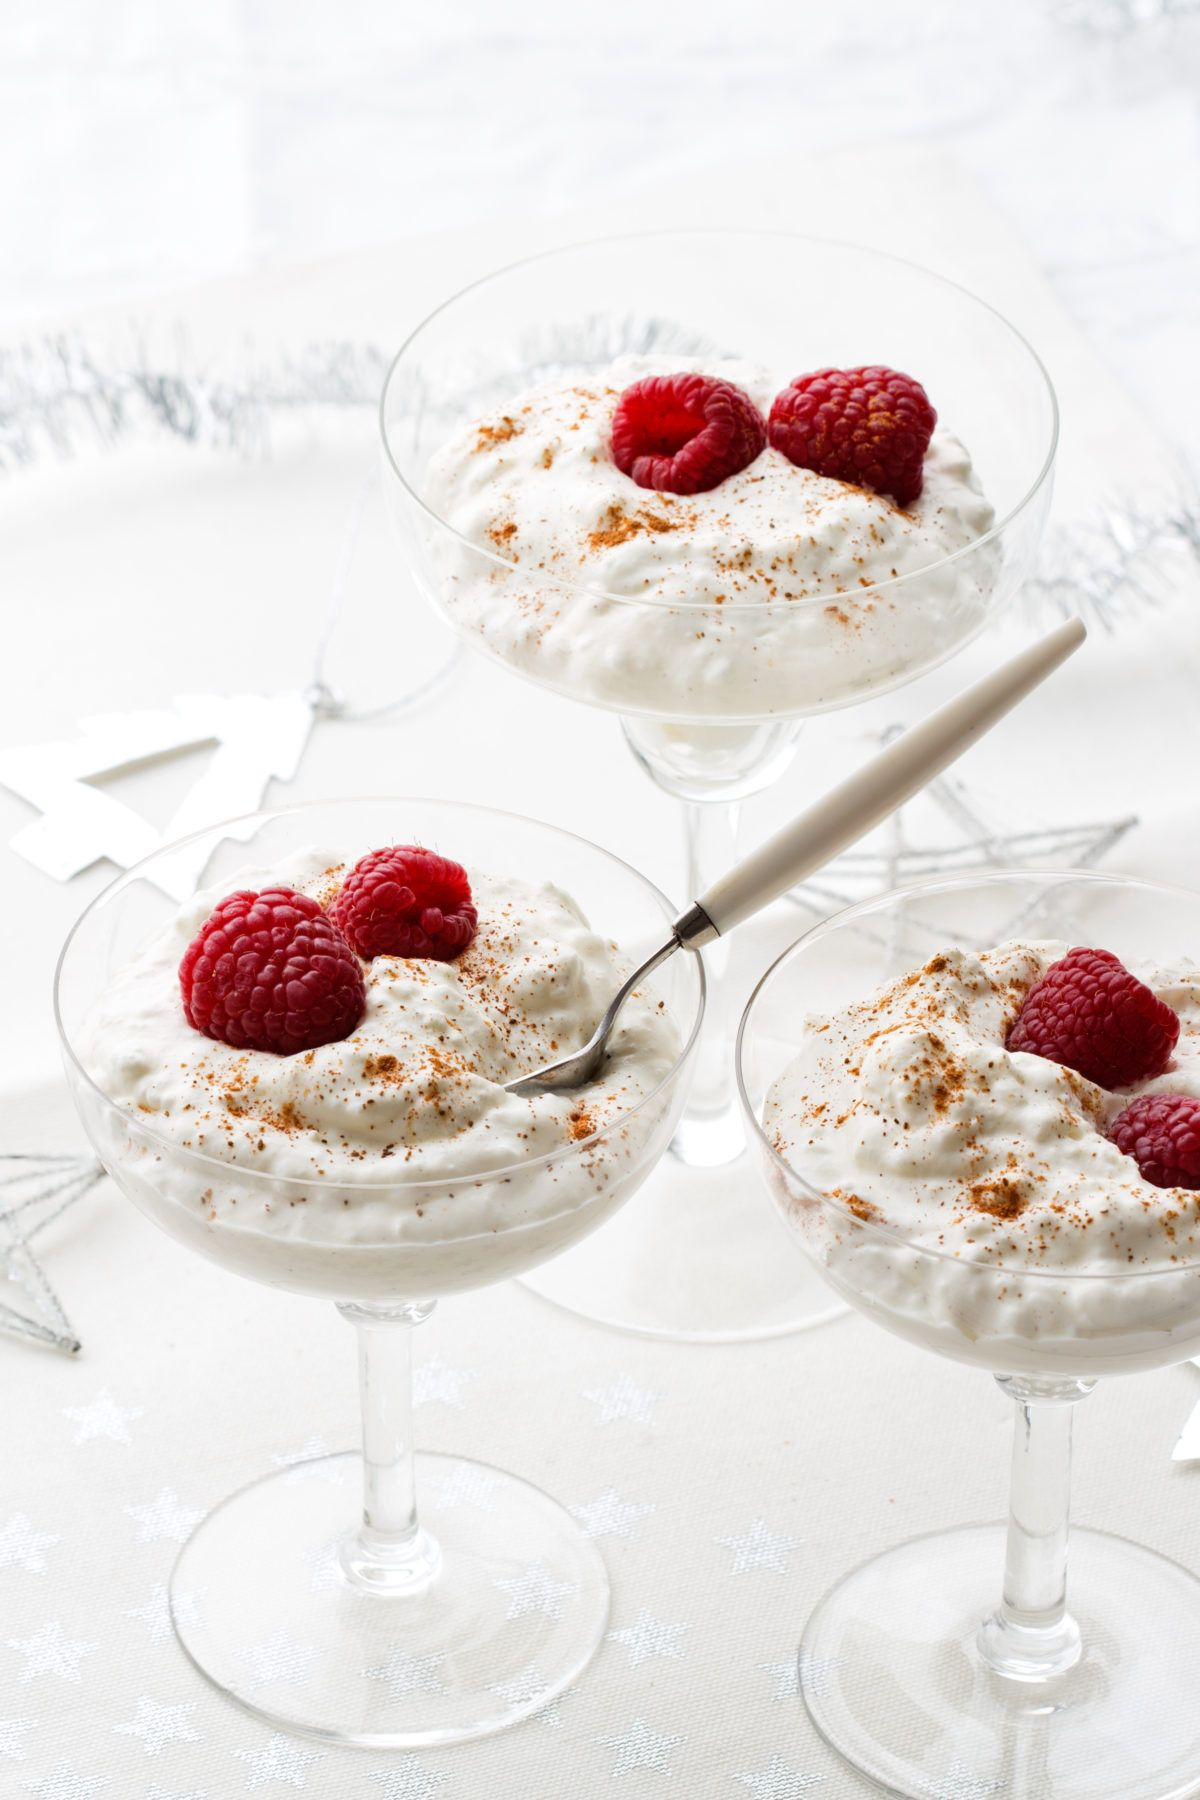 Stupendous Creamy Cottage Cheese Pudding Diet Doctor Low Carb Home Interior And Landscaping Eliaenasavecom